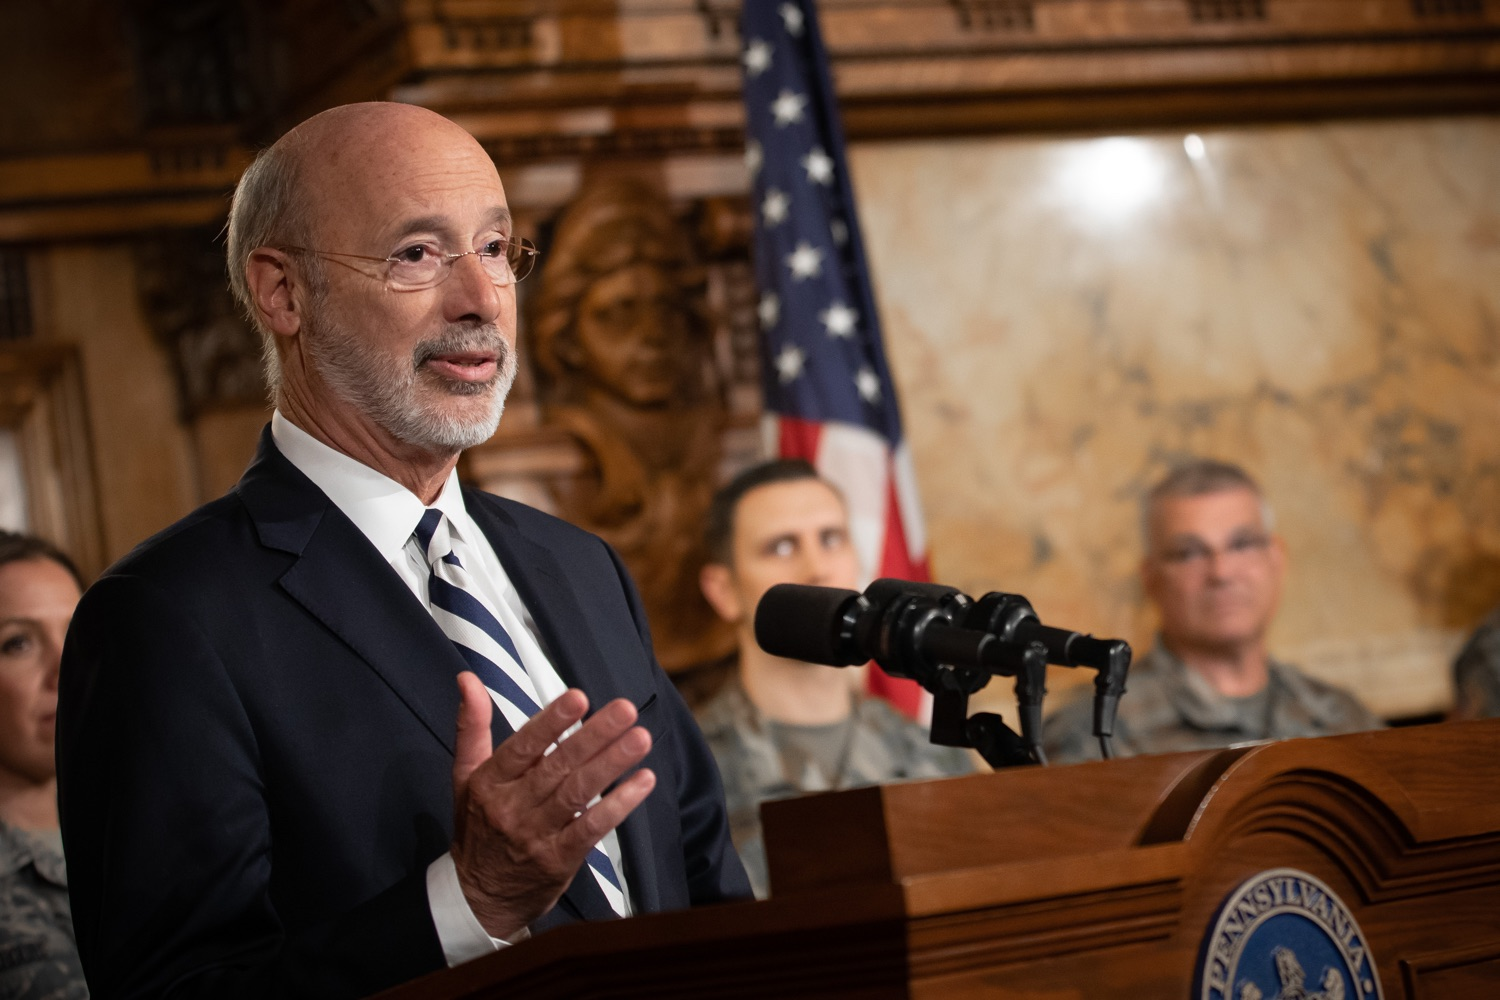 """<a href=""""https://filesource.wostreaming.net/commonwealthofpa/photo/17563_gov_giBill_dz_001.jpg"""" target=""""_blank"""">⇣Download Photo<br></a>Governor Tom Wolf speaking at the announcement. Governor Tom Wolf, joined by Pennsylvanias adjutant general and head of the Department of Military and Veterans Affairs Maj. Gen. Anthony Carelli, legislators and PA National Guard members and their families, encouraged PA National Guard members to take advantage of the new Military Family Education Program, or PA GI bill, now open for enrollment. Harrisburg, PA Monday, November 4 2019"""